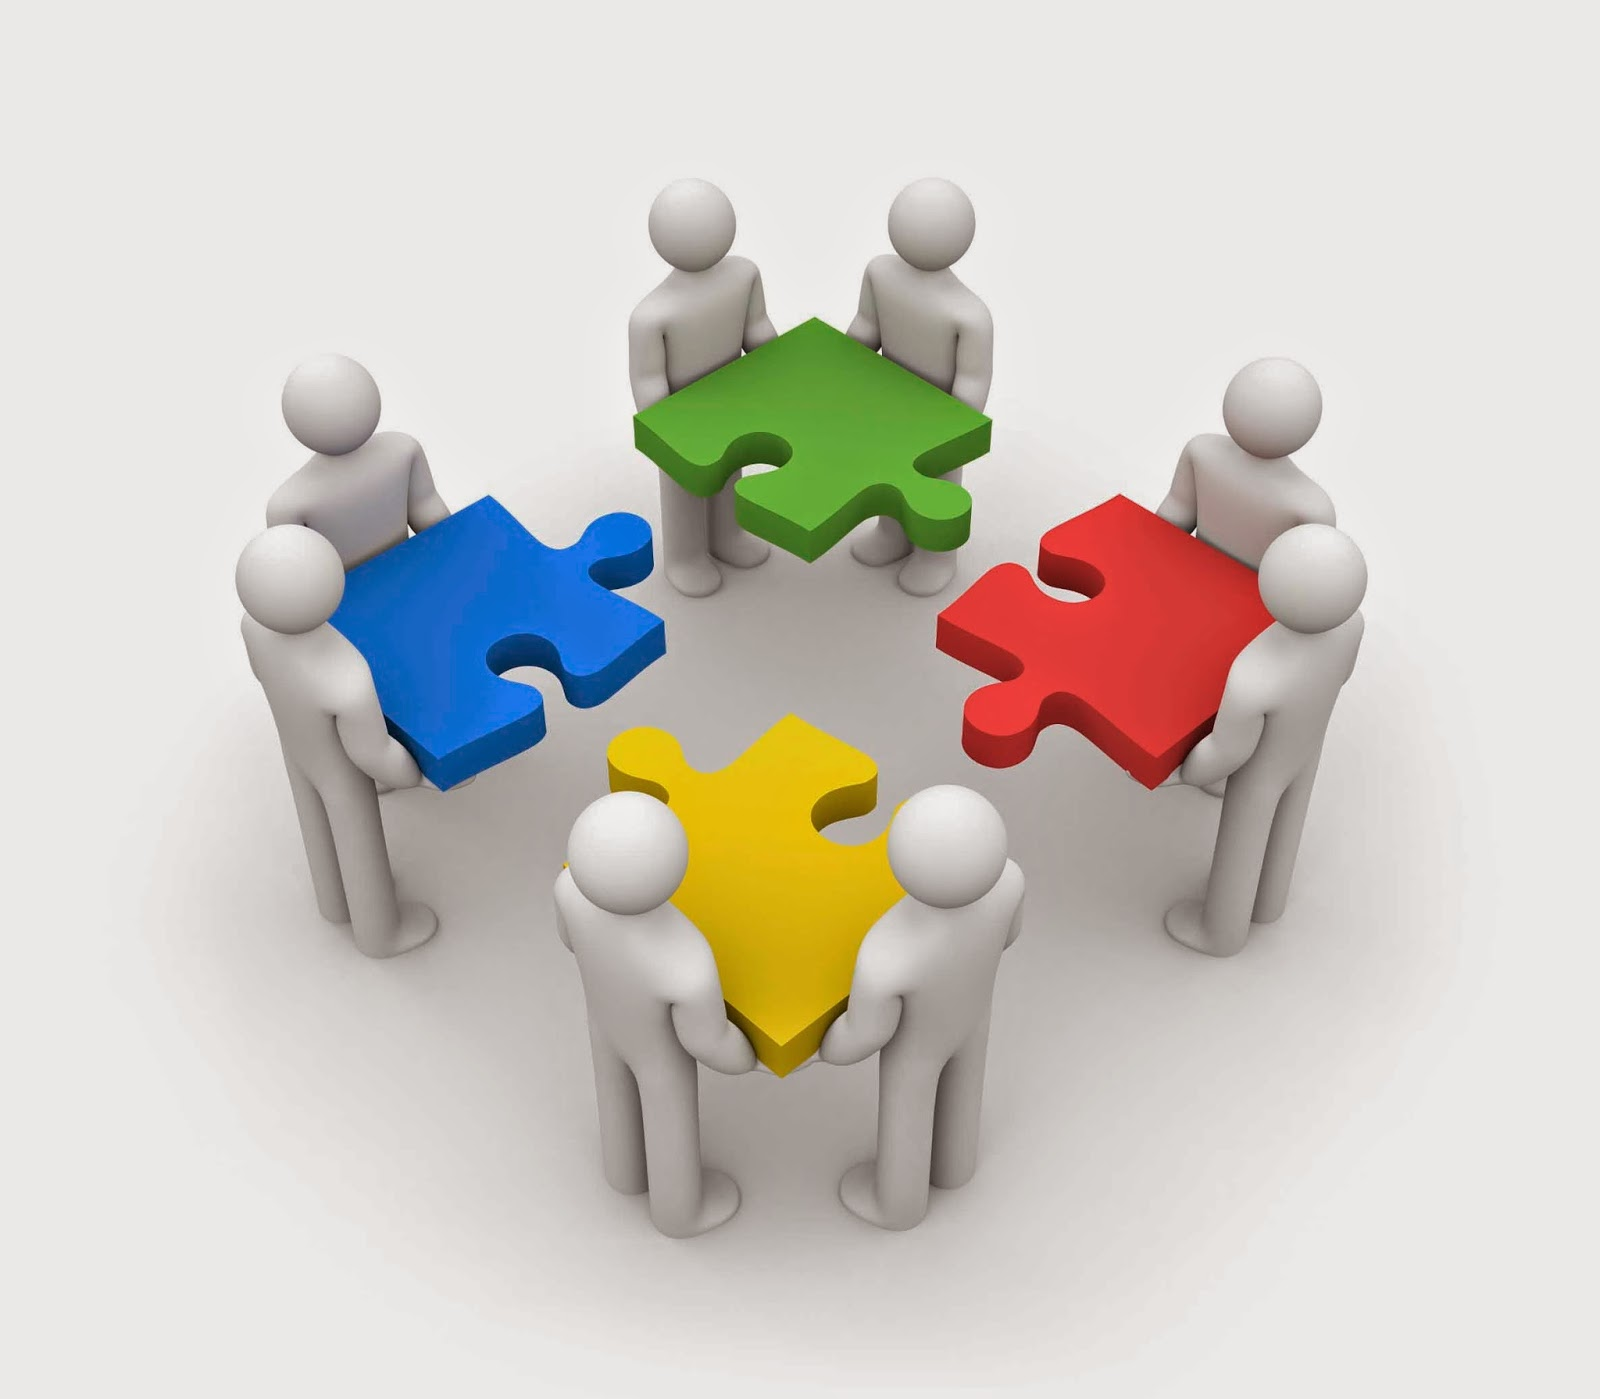 Clipart Of Groups Of People Holding Puzzle Pieces That Are About To